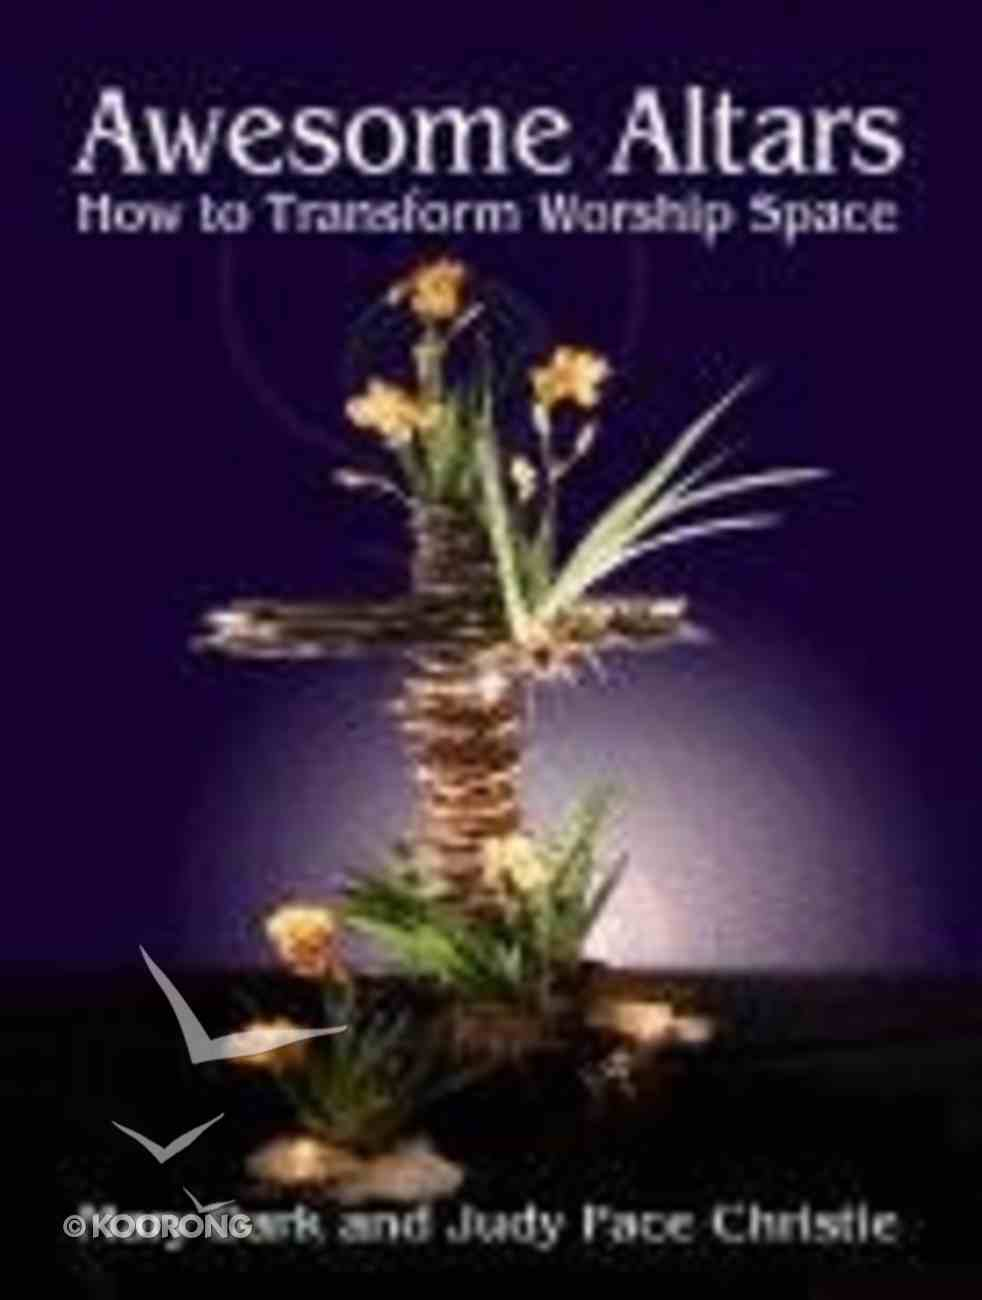 Awesome Altars Paperback